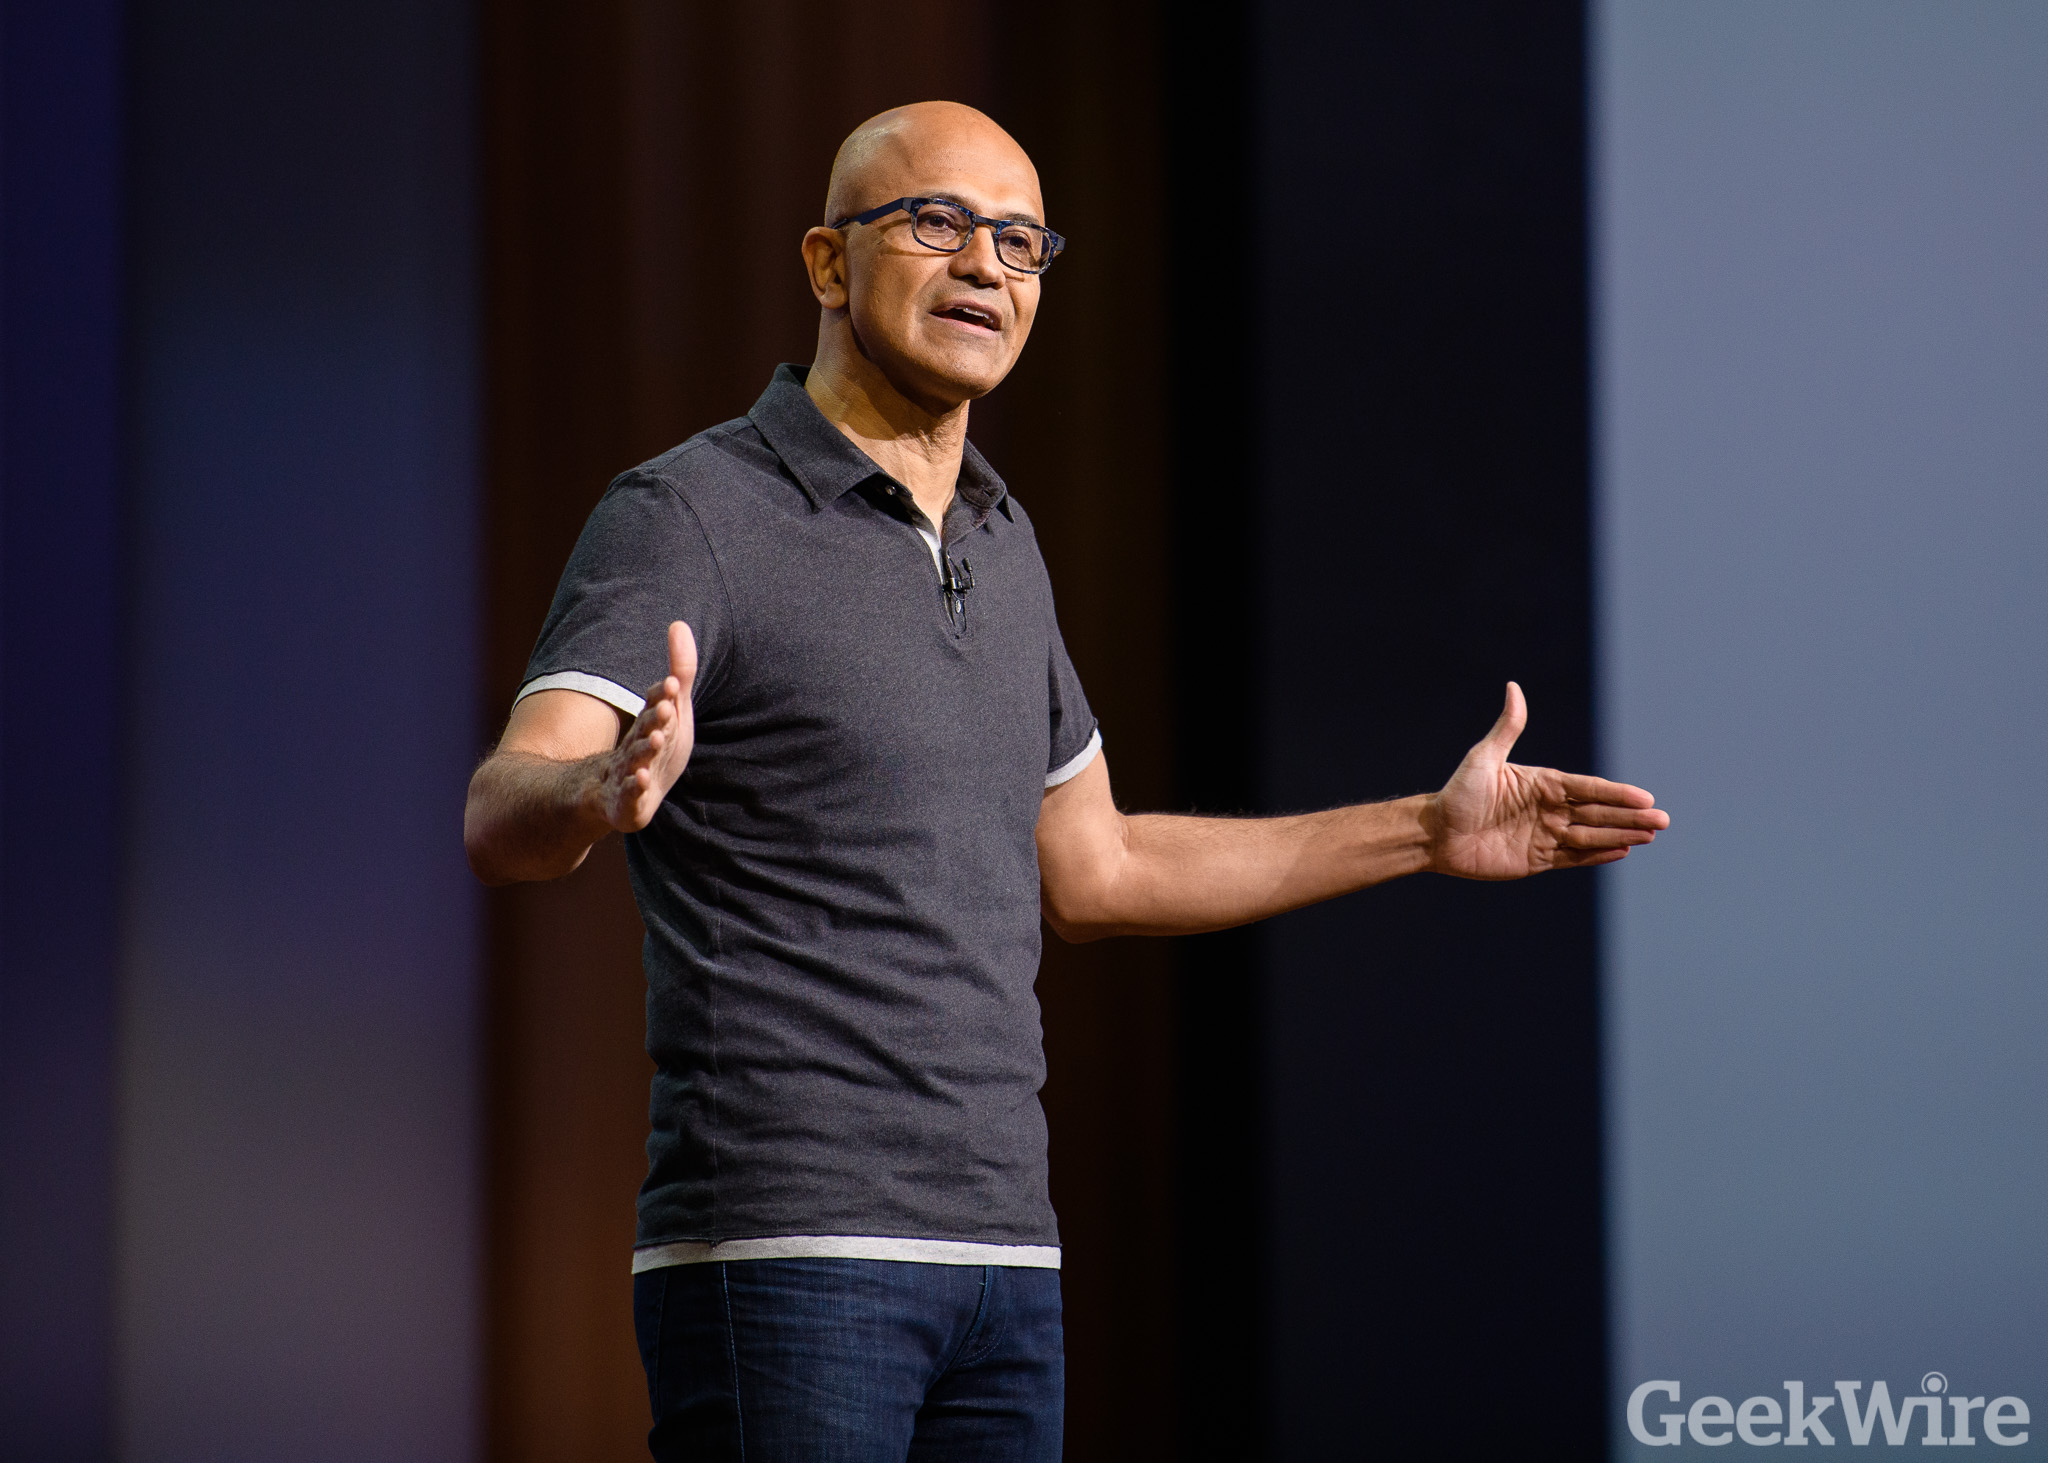 Microsoft's record year helps CEO Satya Nadella earn more than $25M